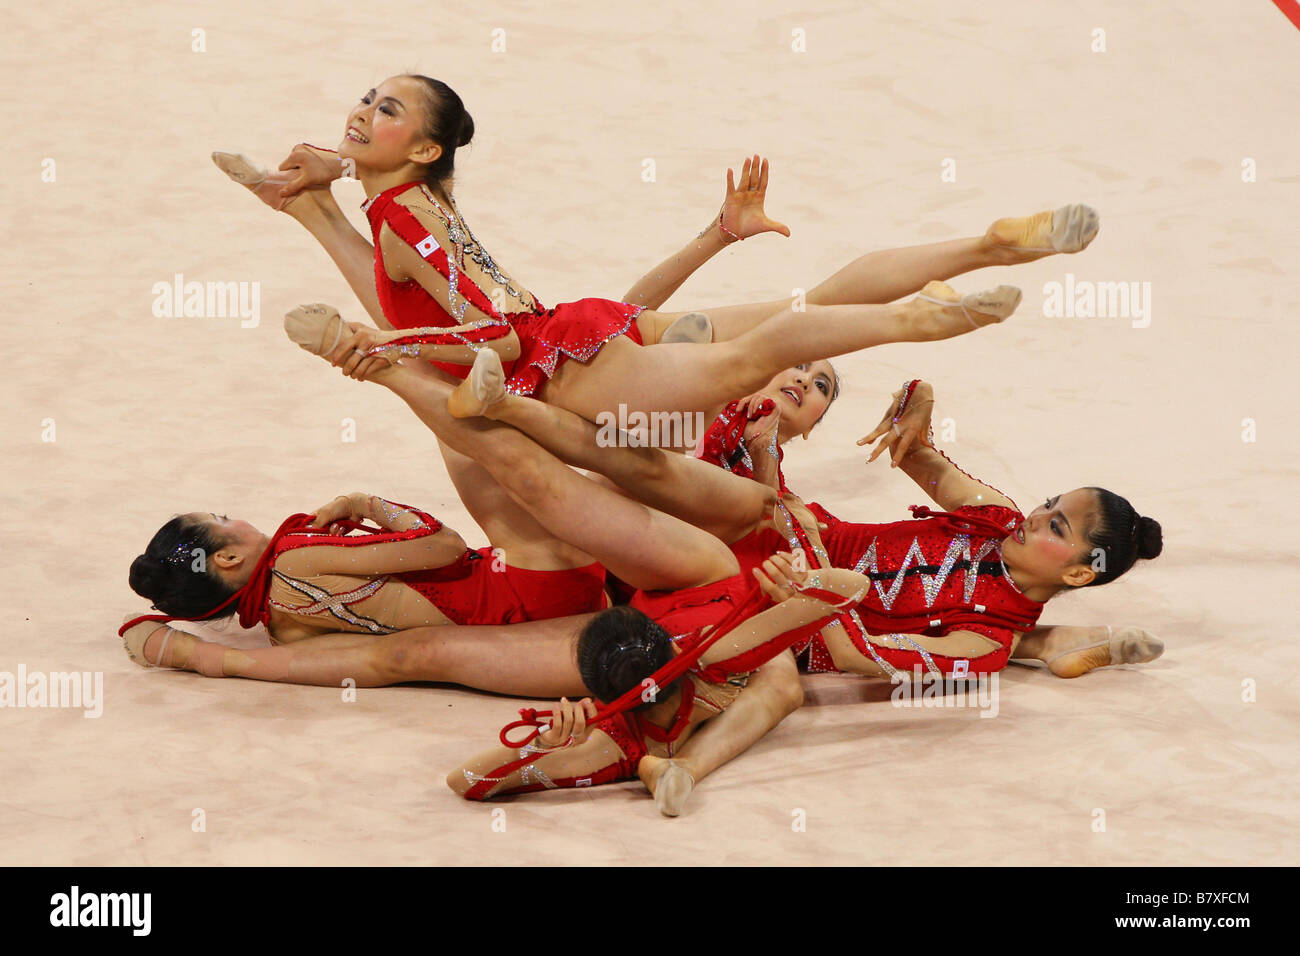 Rhythmic Gymnastics Japan National Team Group JPN AUGUST 21 2008 Rhythmic Gymnastics Beijing 2008 Olympic Games - Stock Image